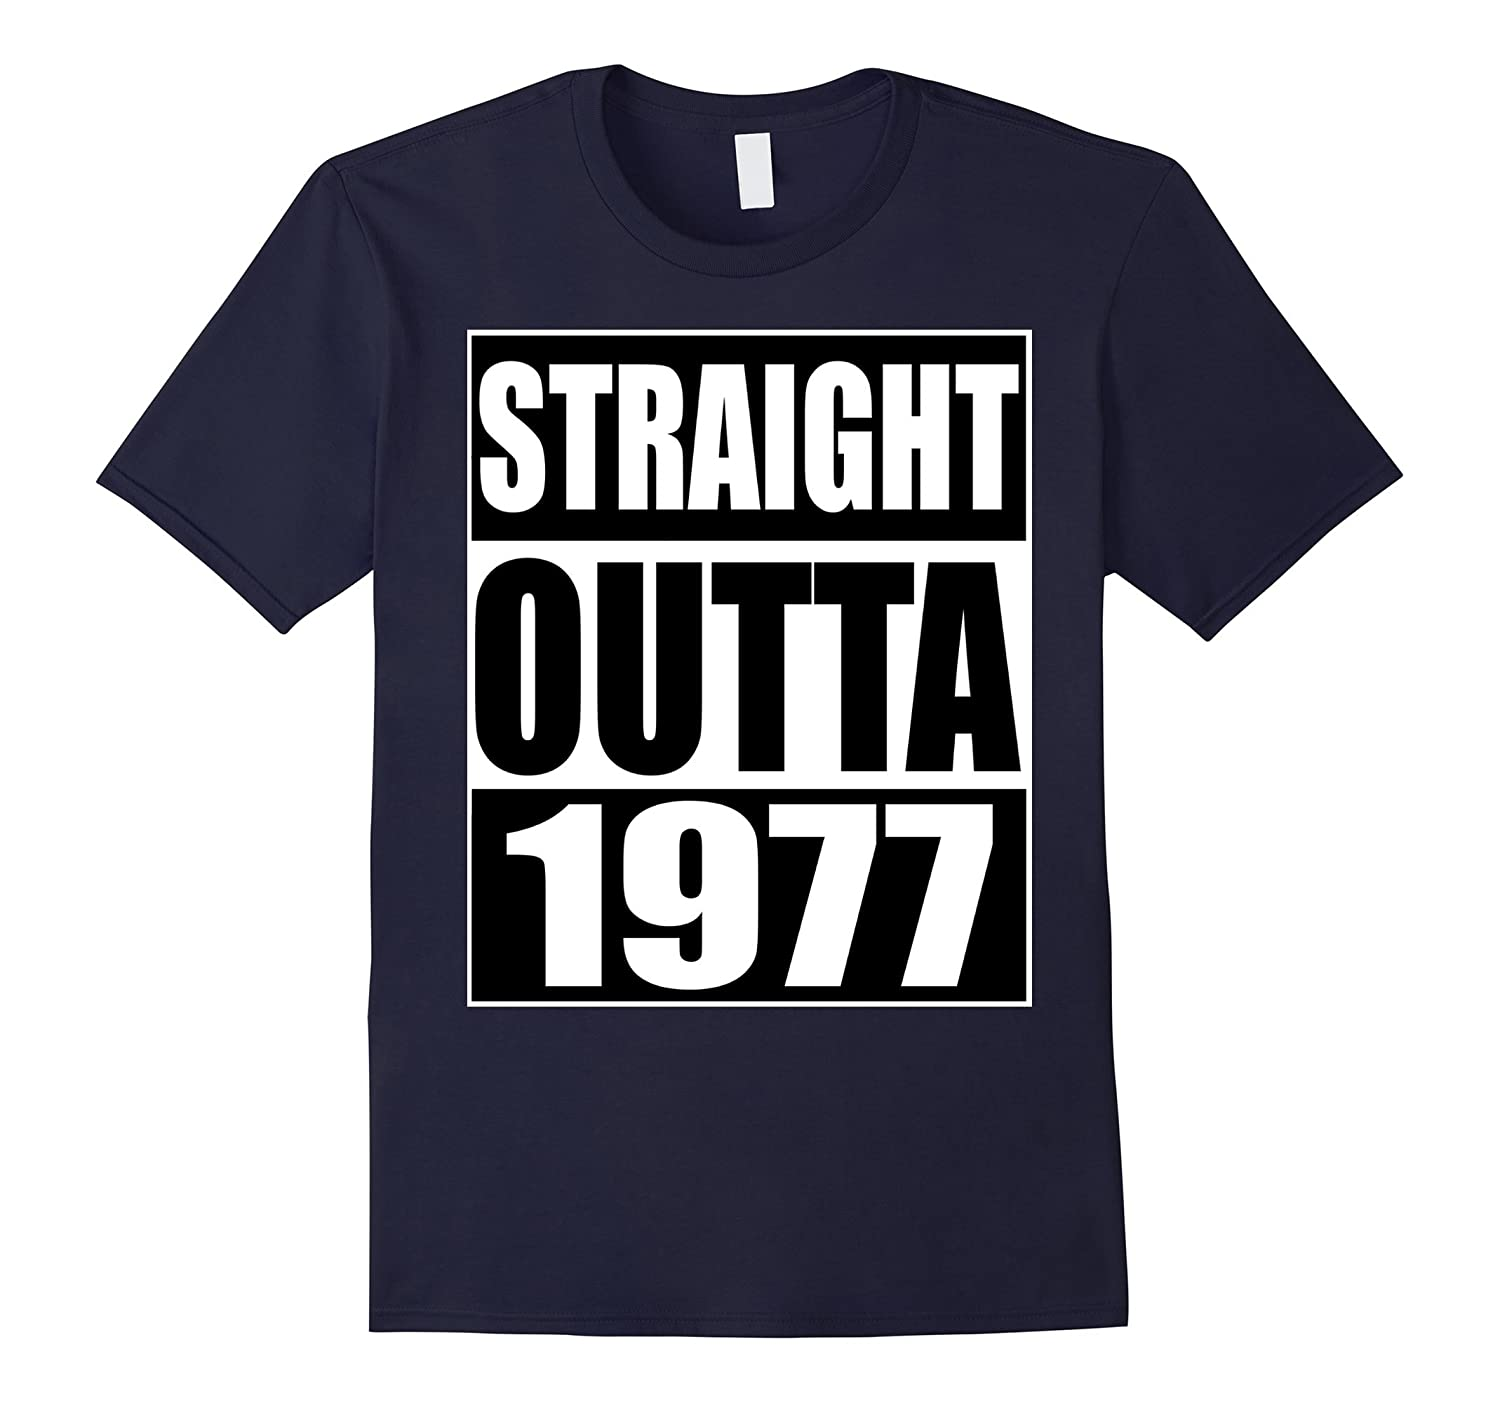 Straight Outta 1977 Shirt